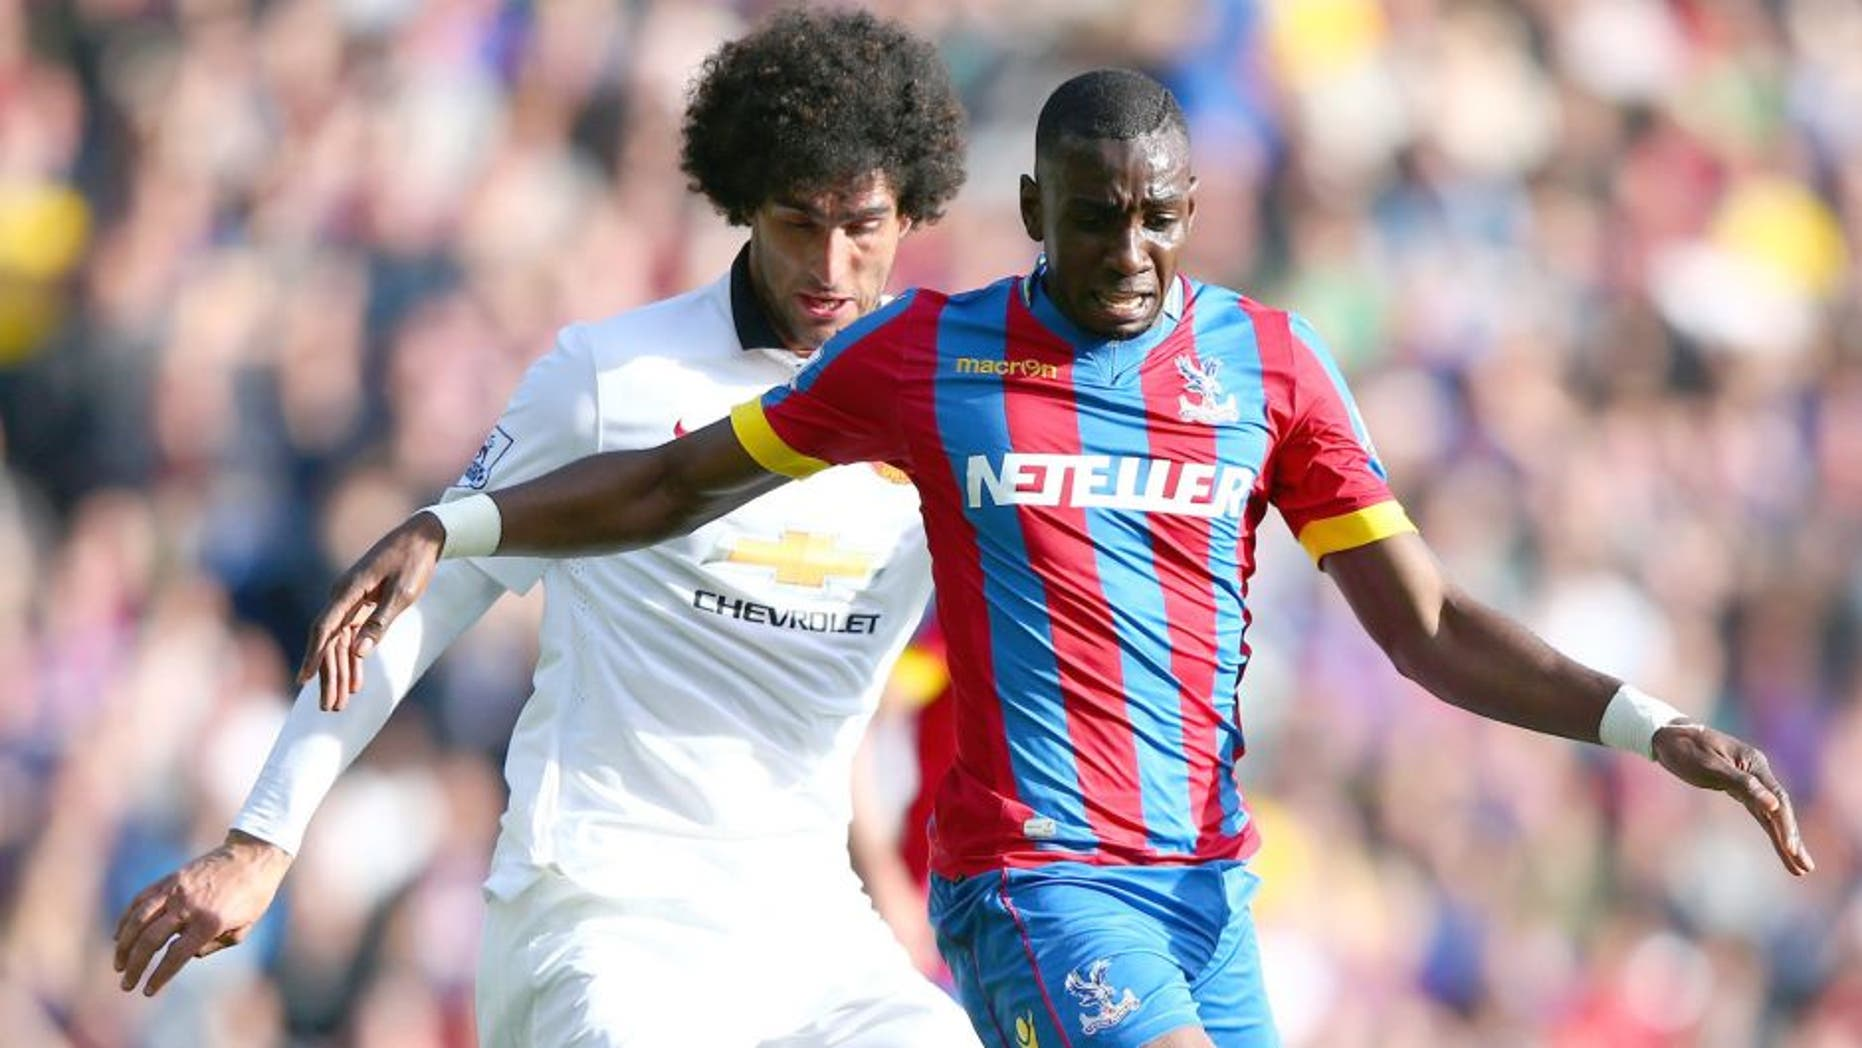 LONDON, ENGLAND - MAY 09: Yannick Bolasie of Crystal Palace is tackled by Marouane Fellaini of Manchester United during the Barclays Premier League match between Crystal Palace and Manchester United at Selhurst Park on May 9, 2015 in London, England. (Photo by Ian Walton/Getty Images)